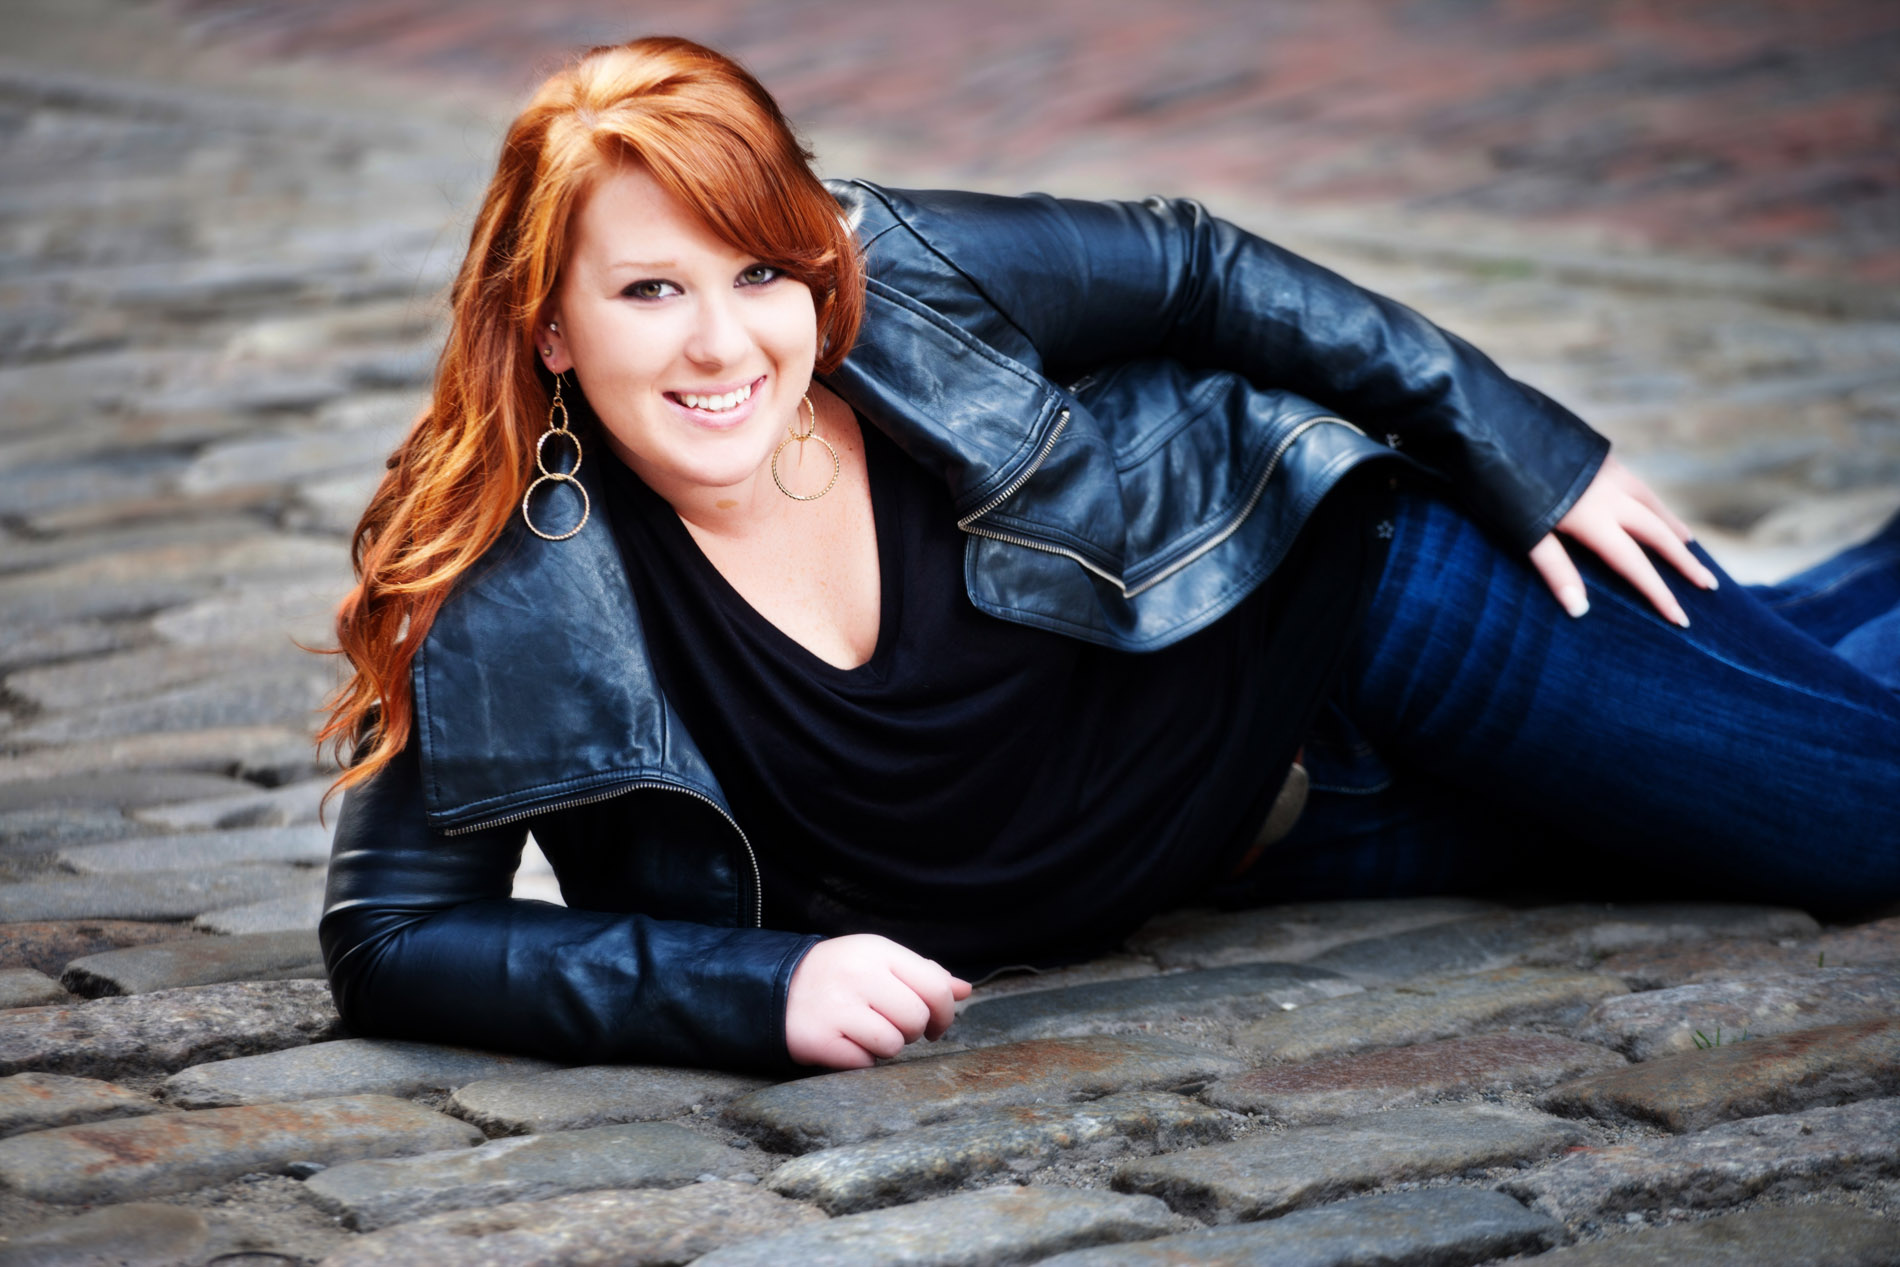 girl in leather jacket lying on cobblestone street in portland for senior portrait shoot